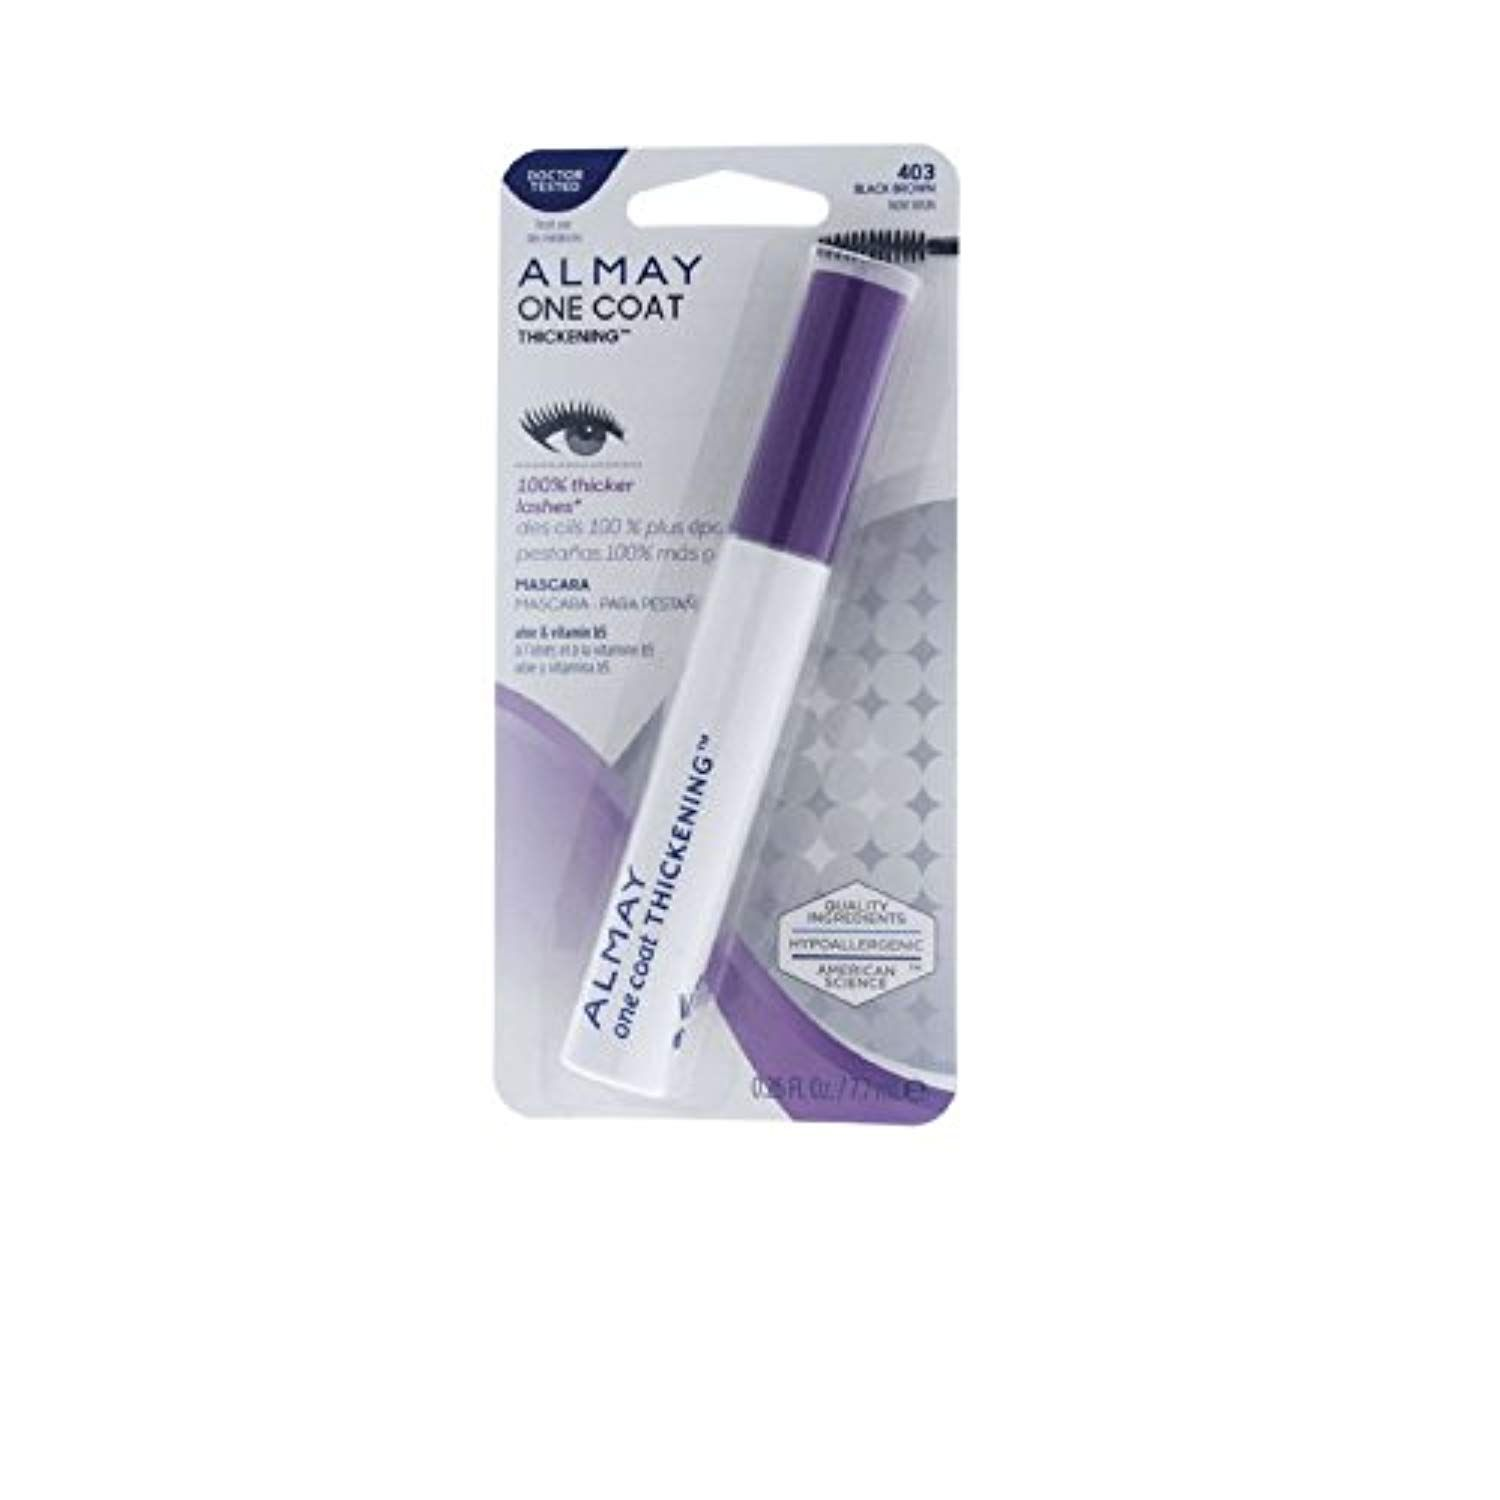 2c327543c12 Almay One Coat Thickening Mascara, Black Brown [403]... *** Read more  reviews of the product by visiting the link on the image. (This is an  affiliate link) ...